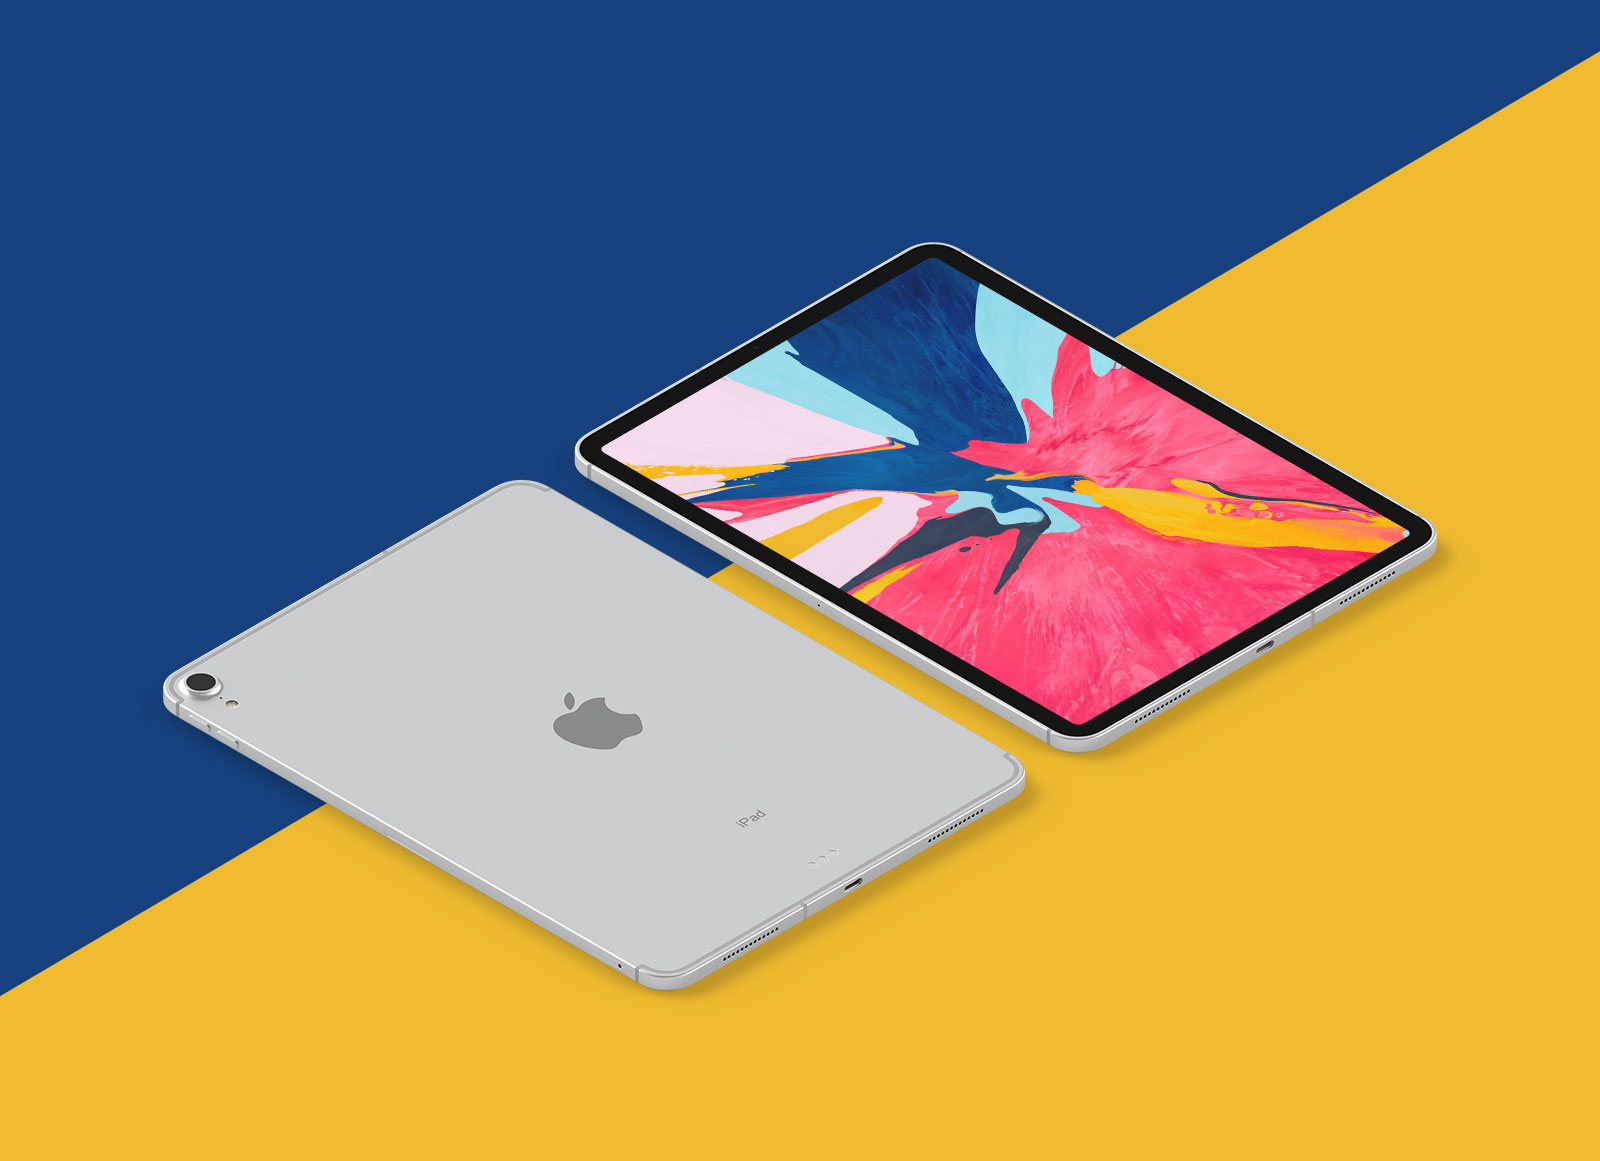 Free-New-iPad-Pro-2018-Mockup-PSD-in-Perspective-Vew